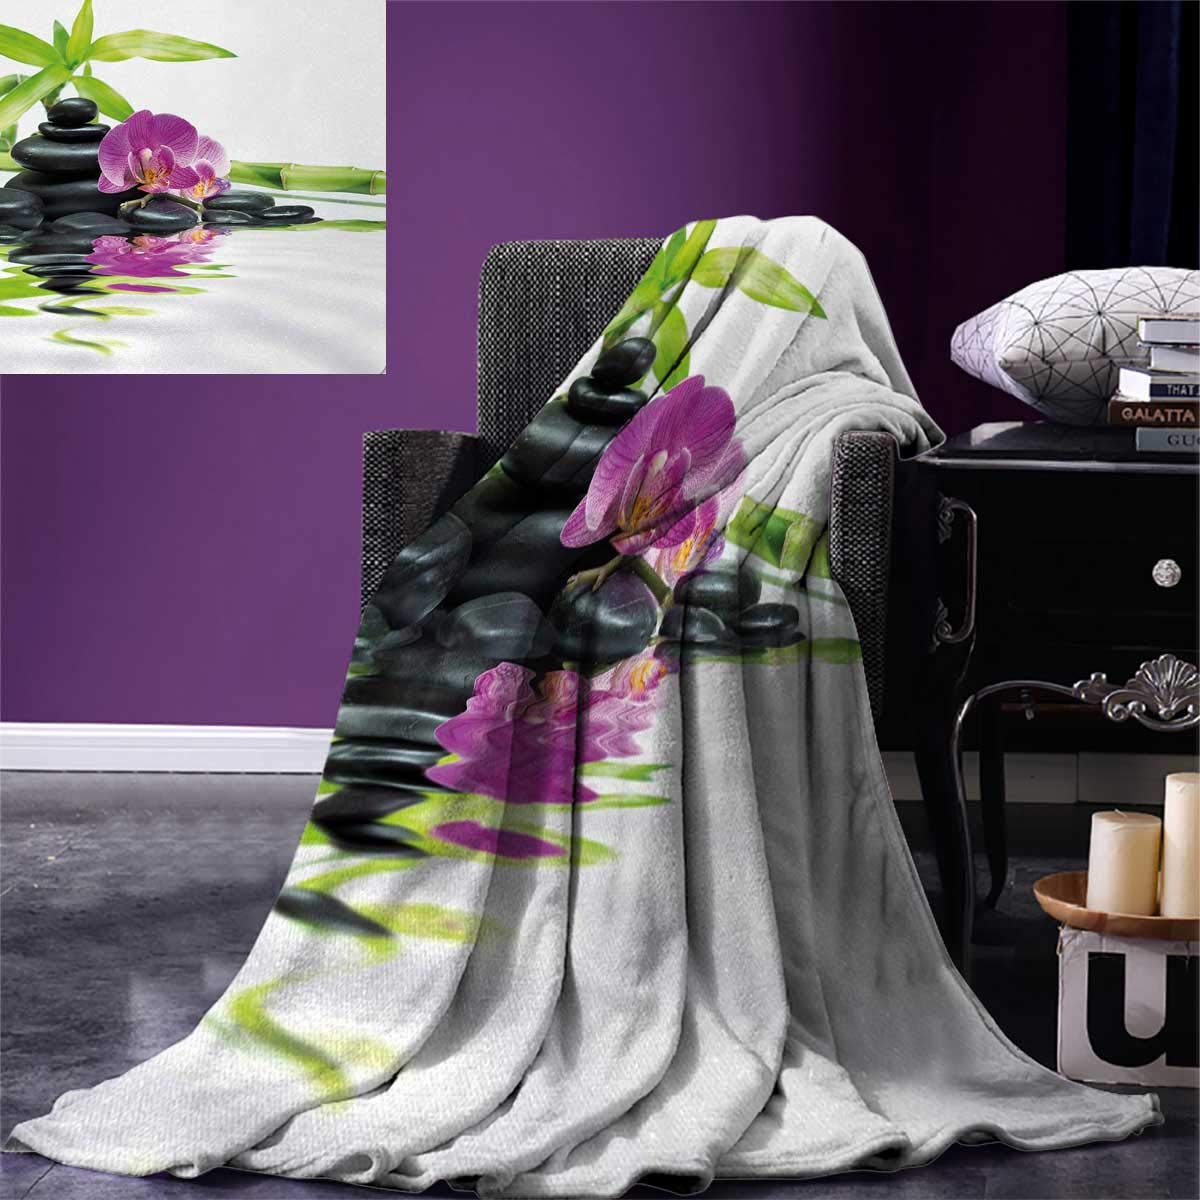 smallbeefly Spa Digital Printing Blanket Asian Relaxation Ways Zen Massage Stones Purple Orchid a Bamboo Summer Quilt Comforter 80''x60'' Purple Black Green